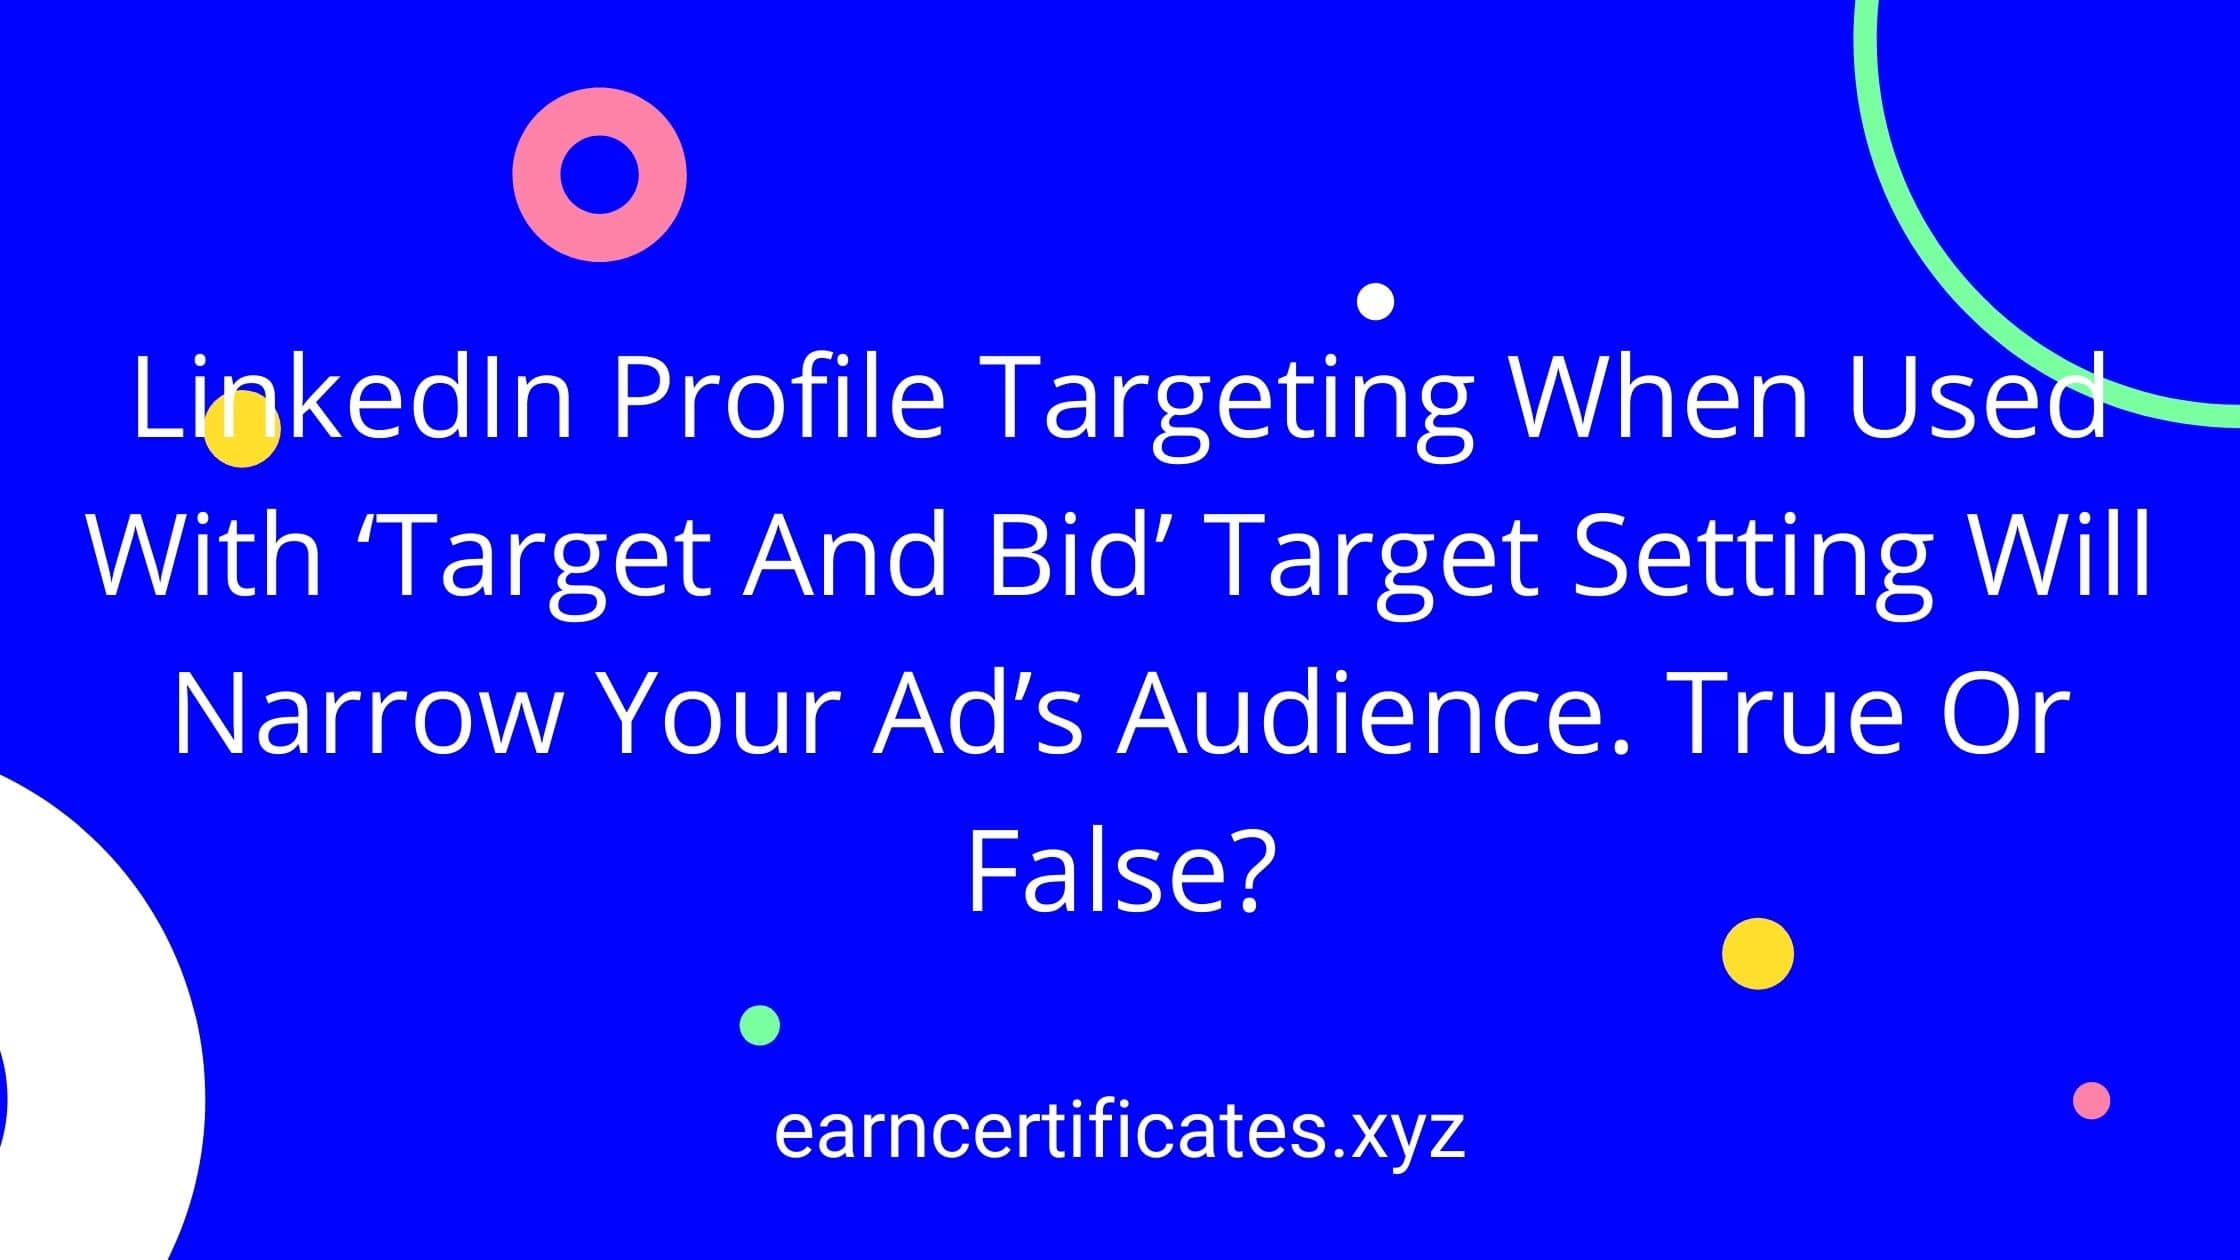 LinkedIn Profile Targeting When Used With 'Target And Bid' Target Setting Will Narrow Your Ad's Audience. True Or False?